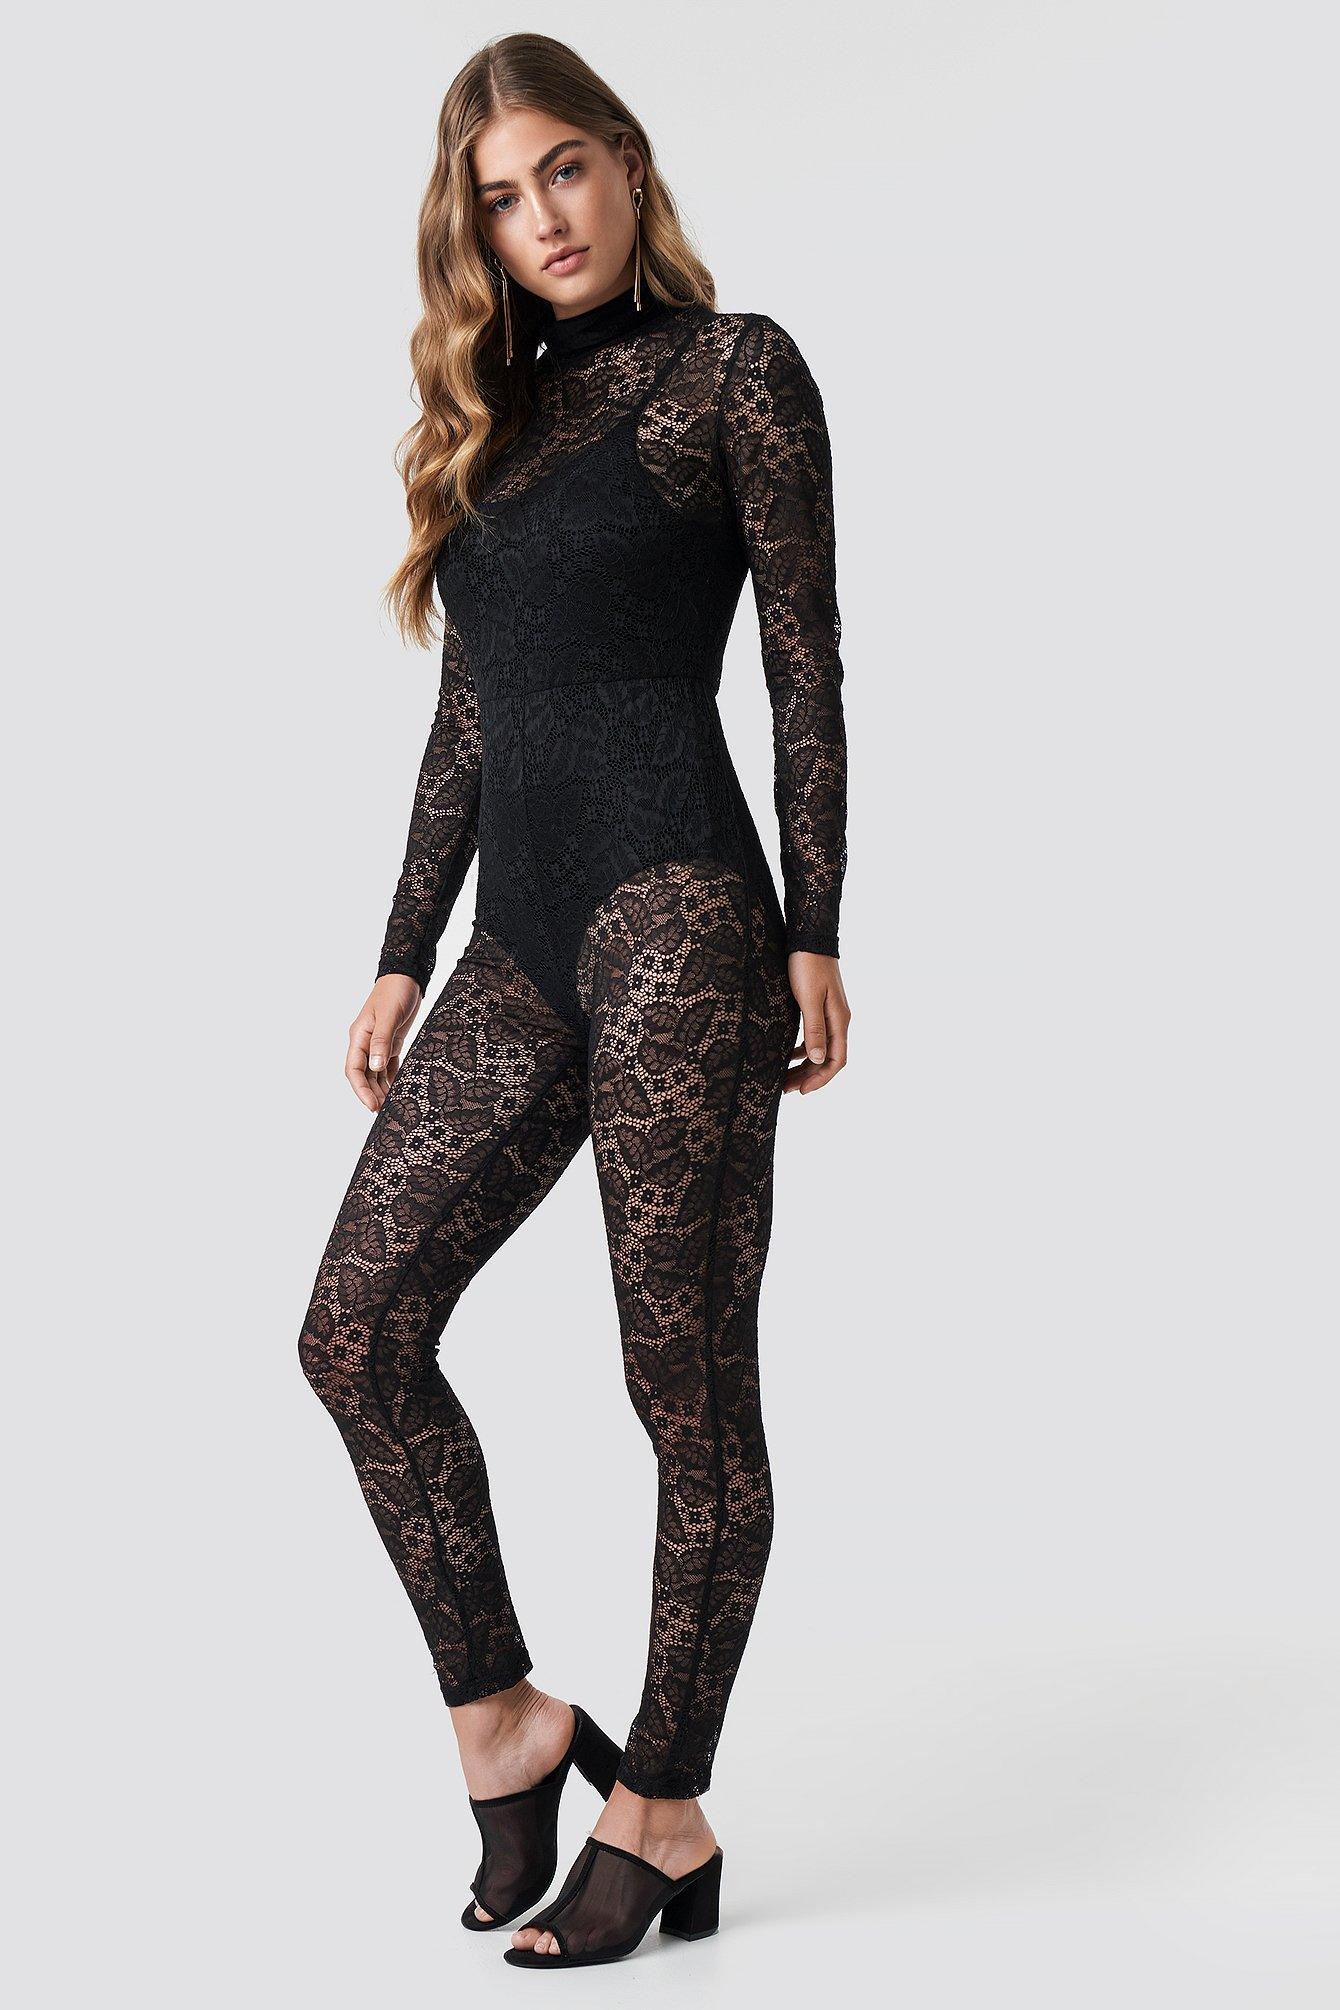 LACED BODYSUIT - BLACK